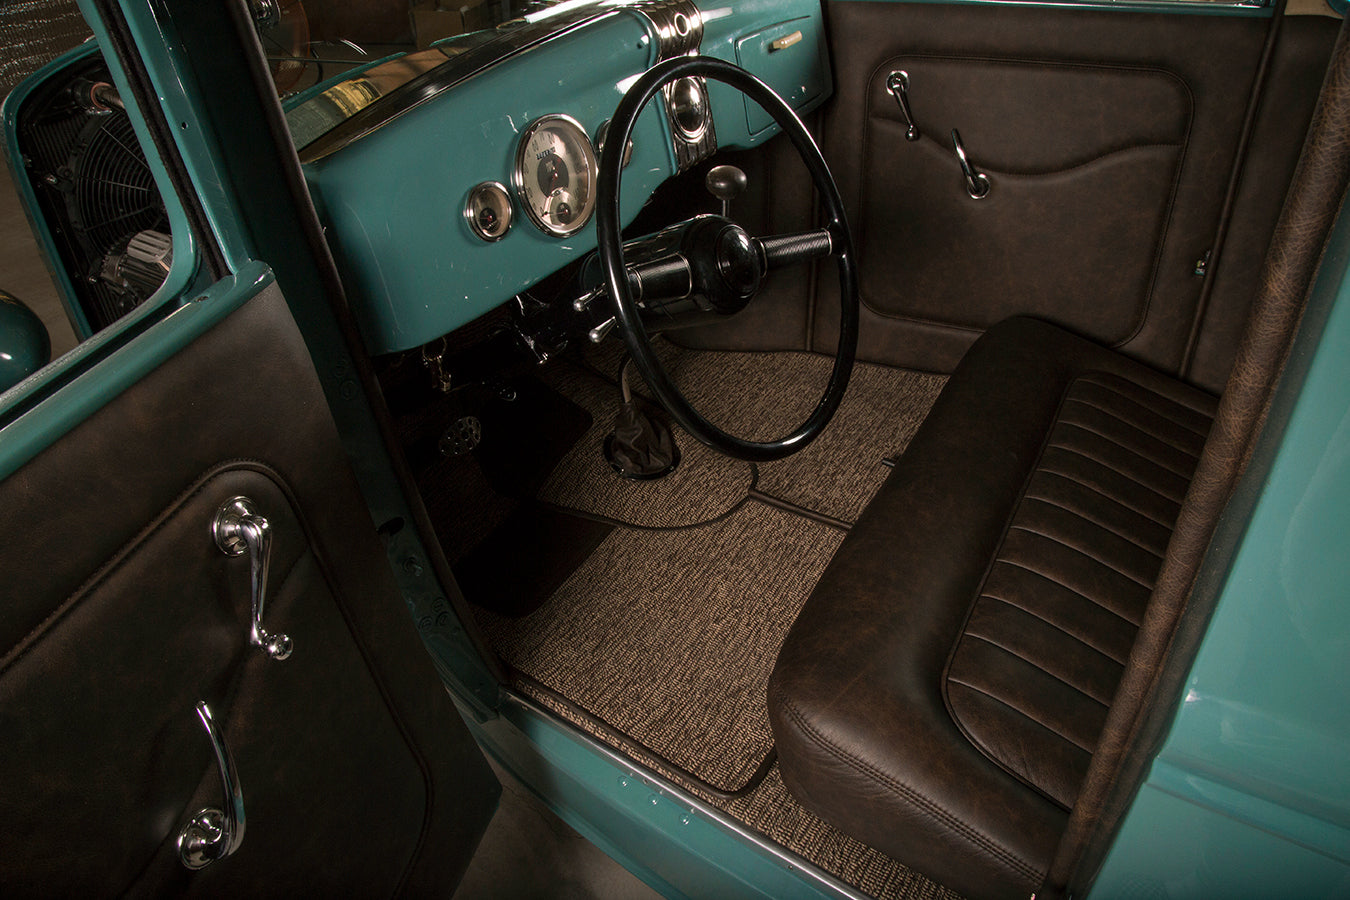 1932 Ford Model A Distressed Leather Interior Relicate Nightshade